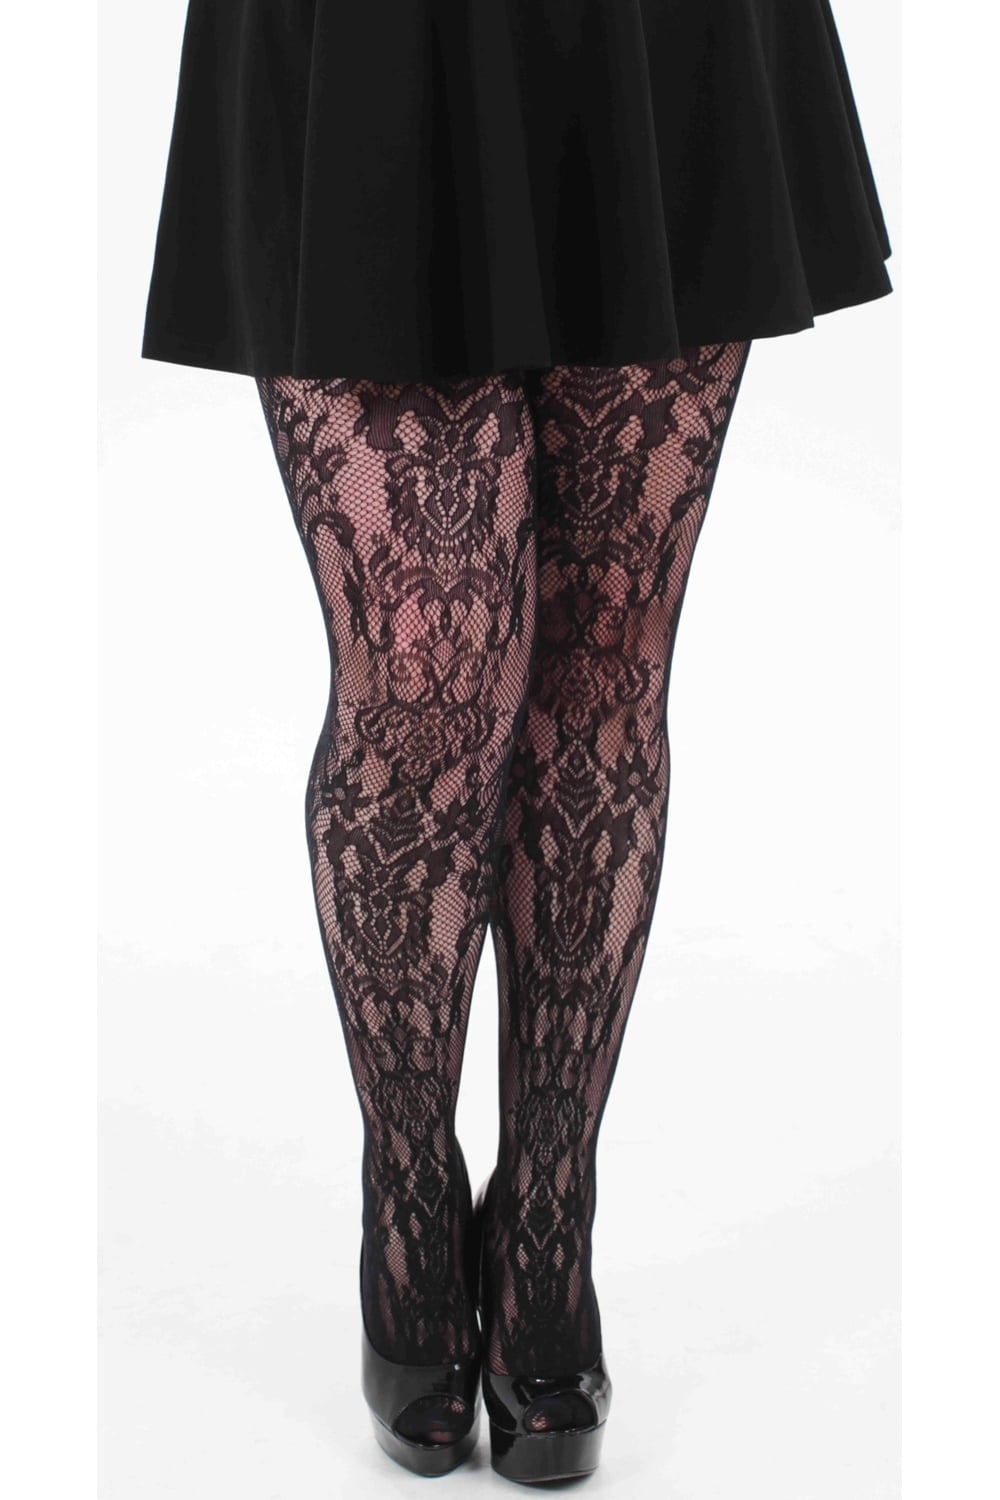 BAROQUE BLACK LACEY LACE TULLE TIGHTS PAMELA MANN INC PLUS SIZE XL XXL XXXL